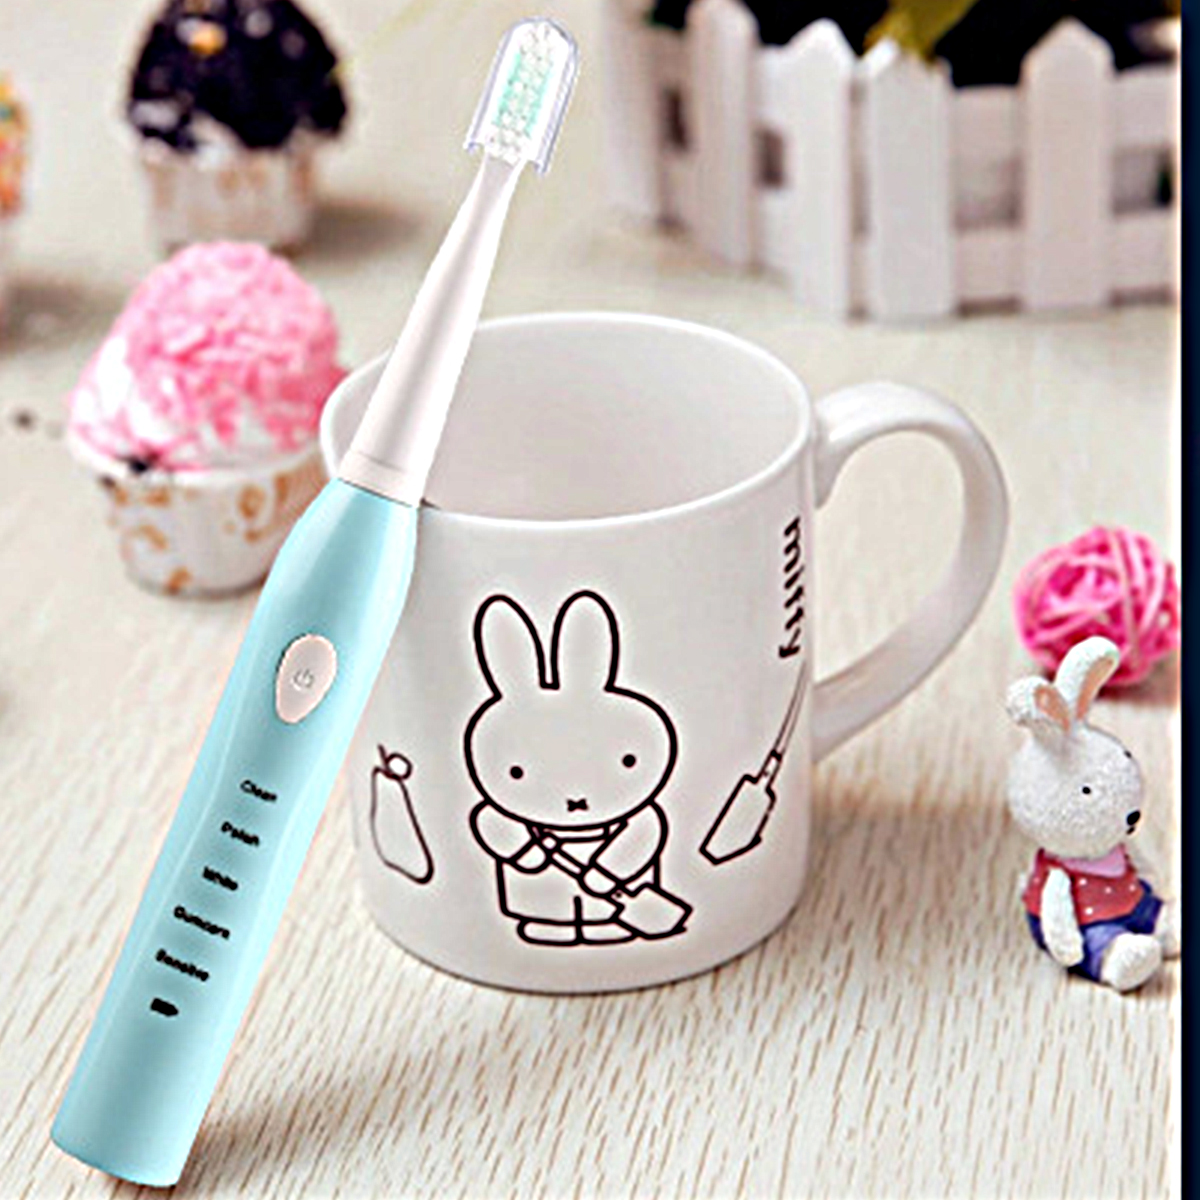 5 Modes Electric Toothbrush Mute Soft Sonic USB Rechargeable Waterproof Tooth Cleaner With 4 Brushes